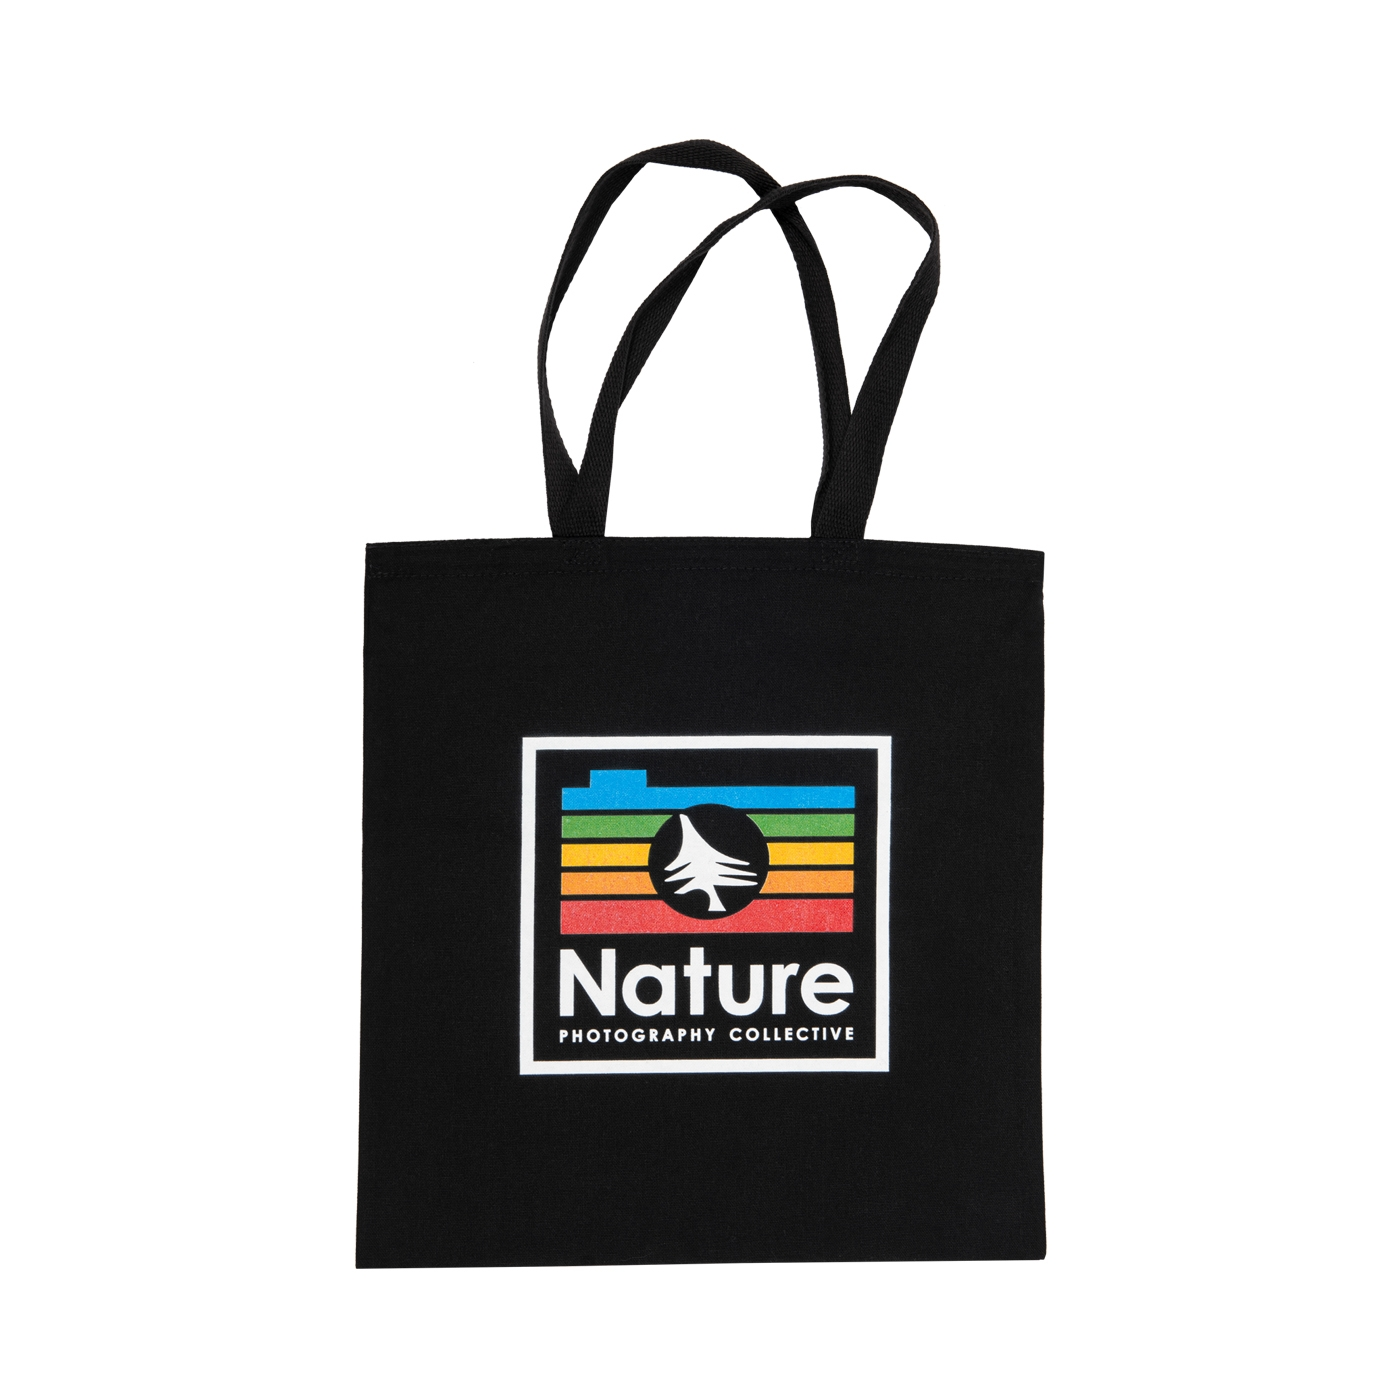 #52Weeksofnature Week 1 Tote